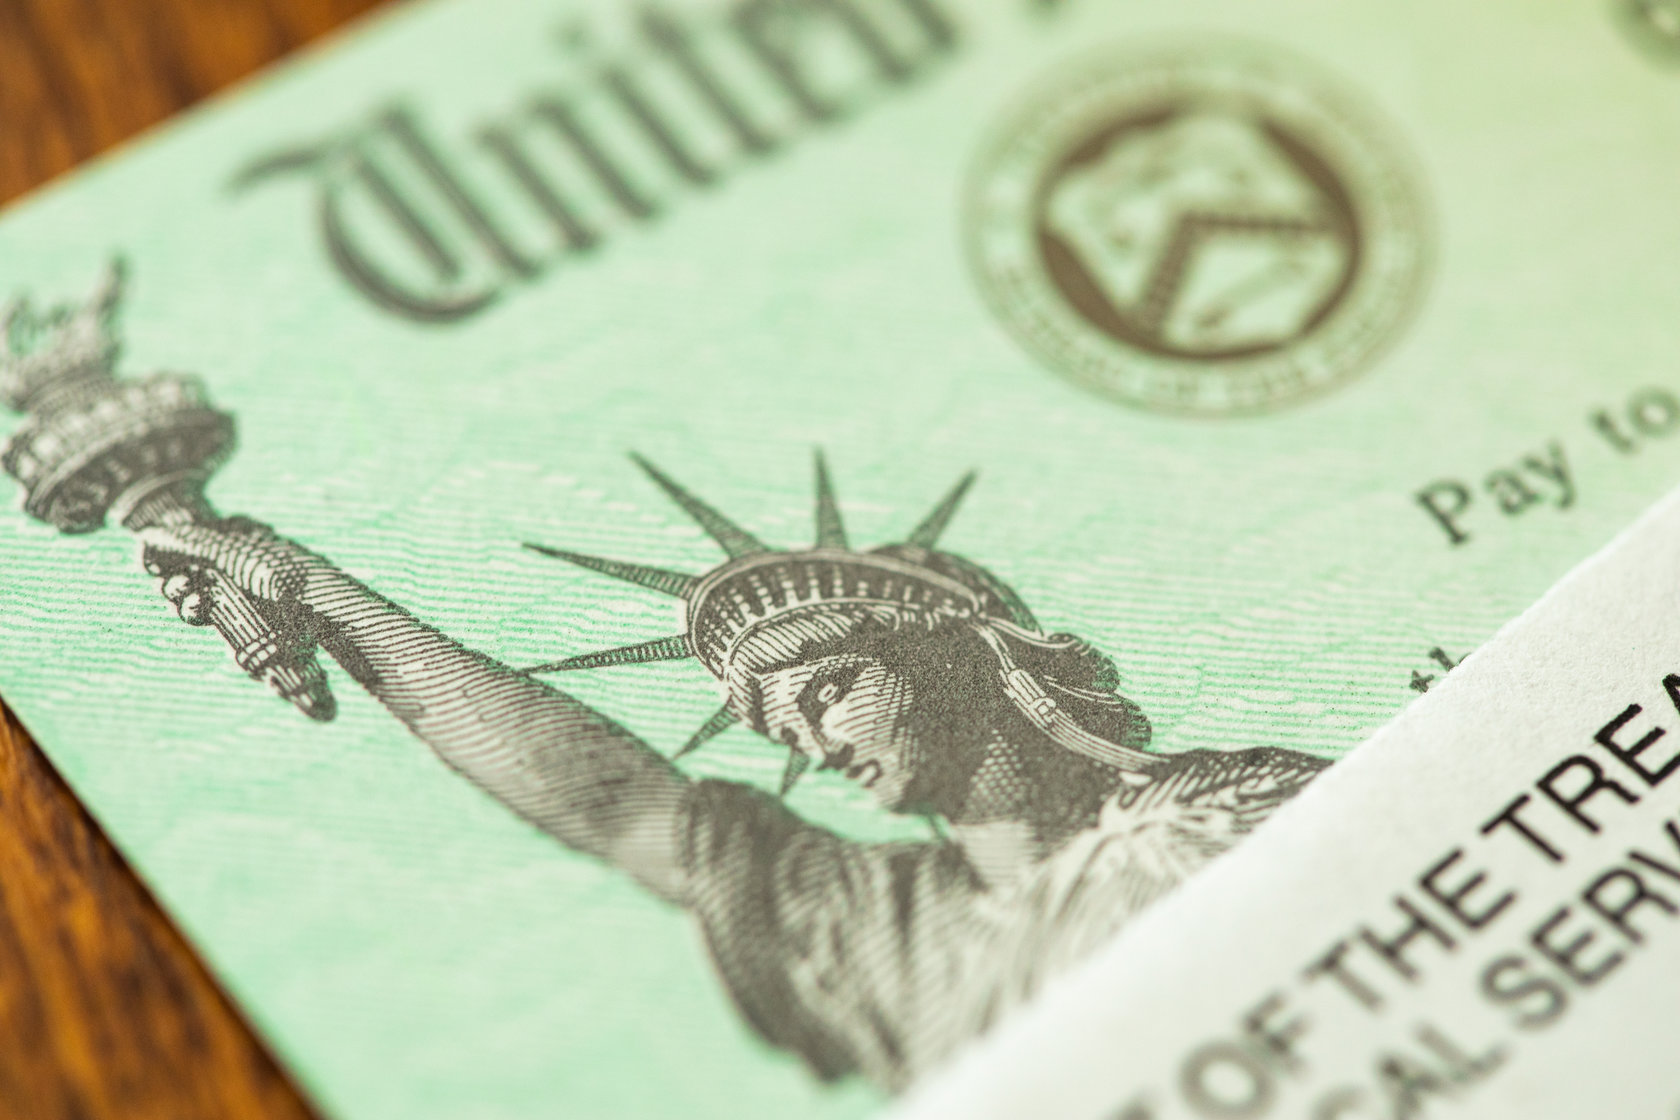 Stimulus check update: People in these 5 states get new checks soon